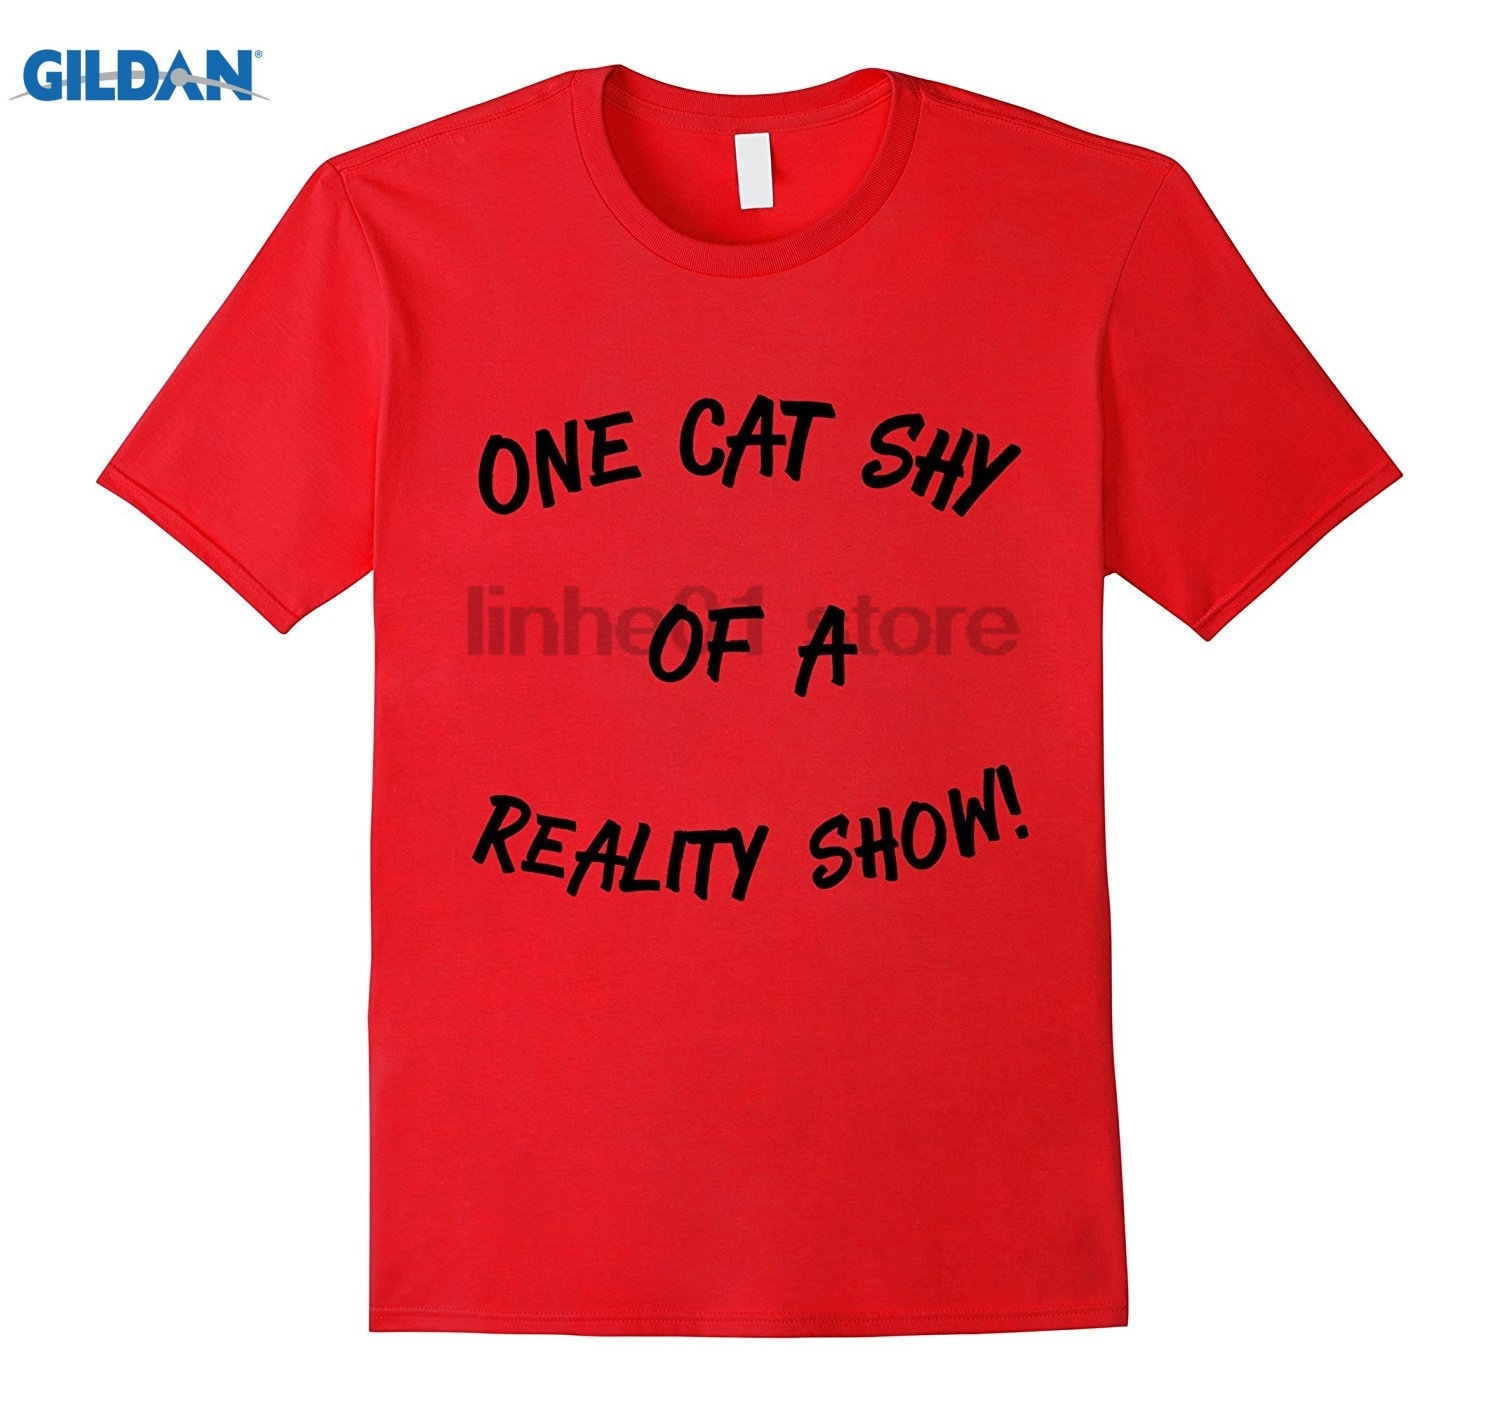 GILDAN One Cat Shy of a Reality Show! sunglasses women T-shirt ...